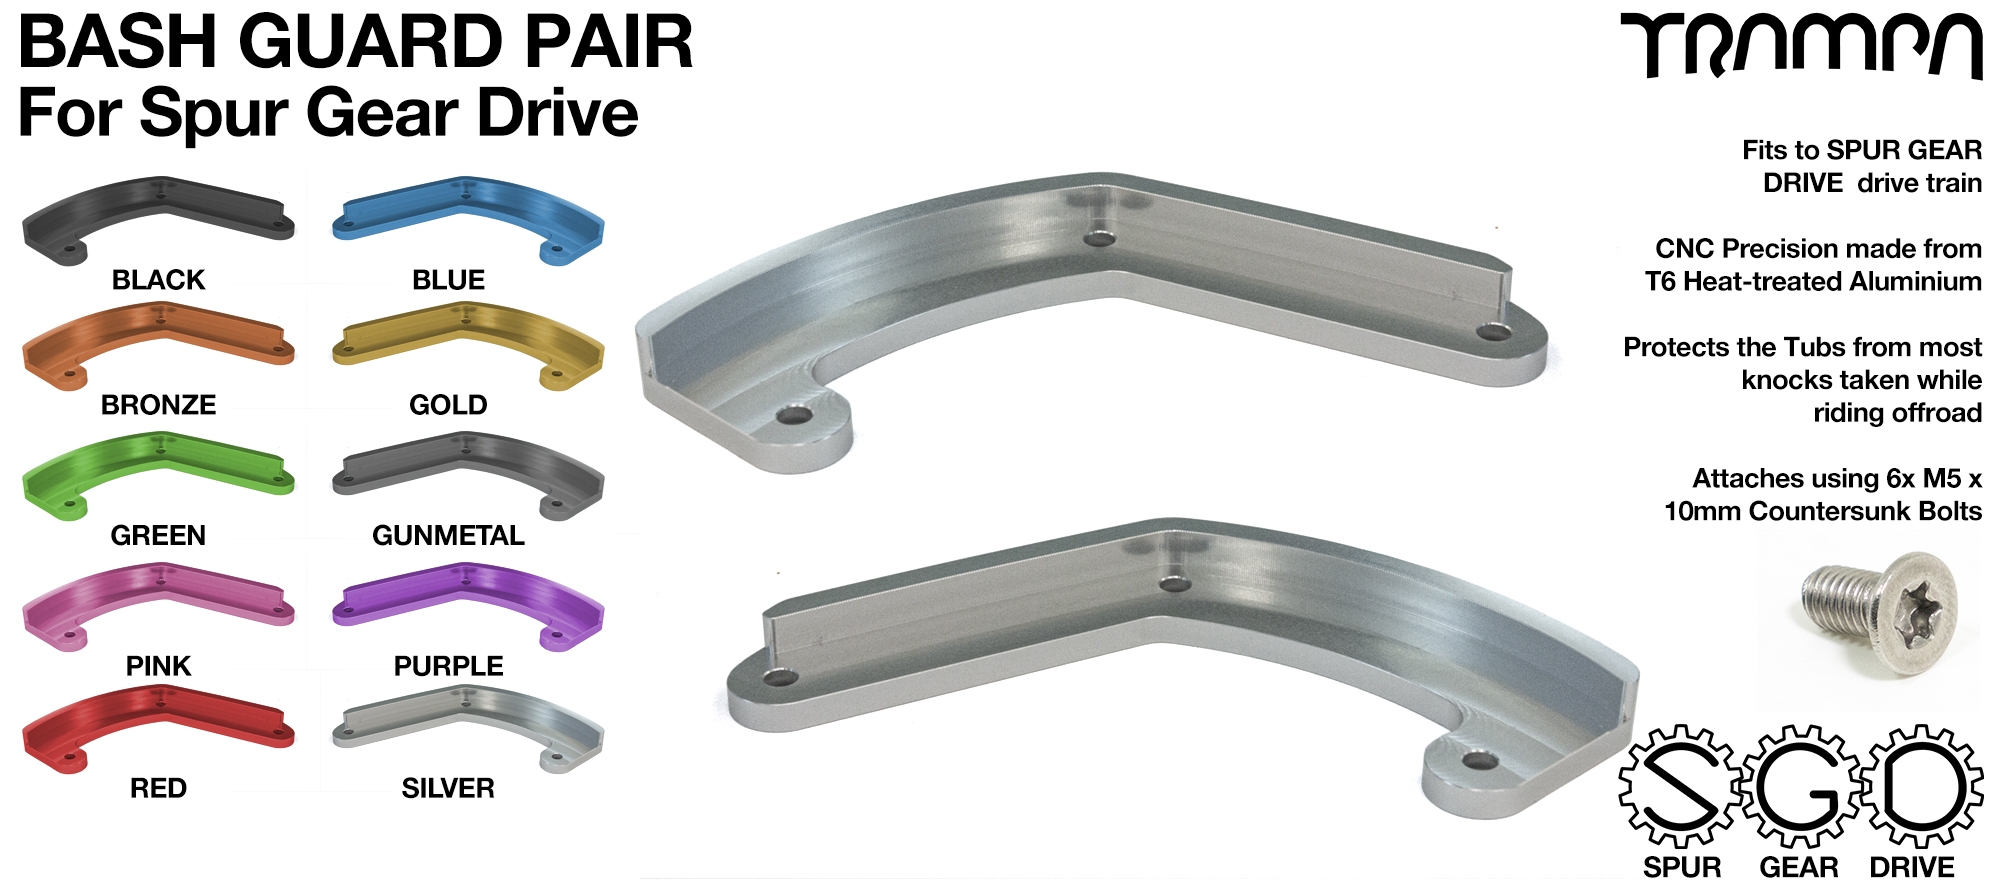 MkII Spur Gear Drive Bash Guards PAIR